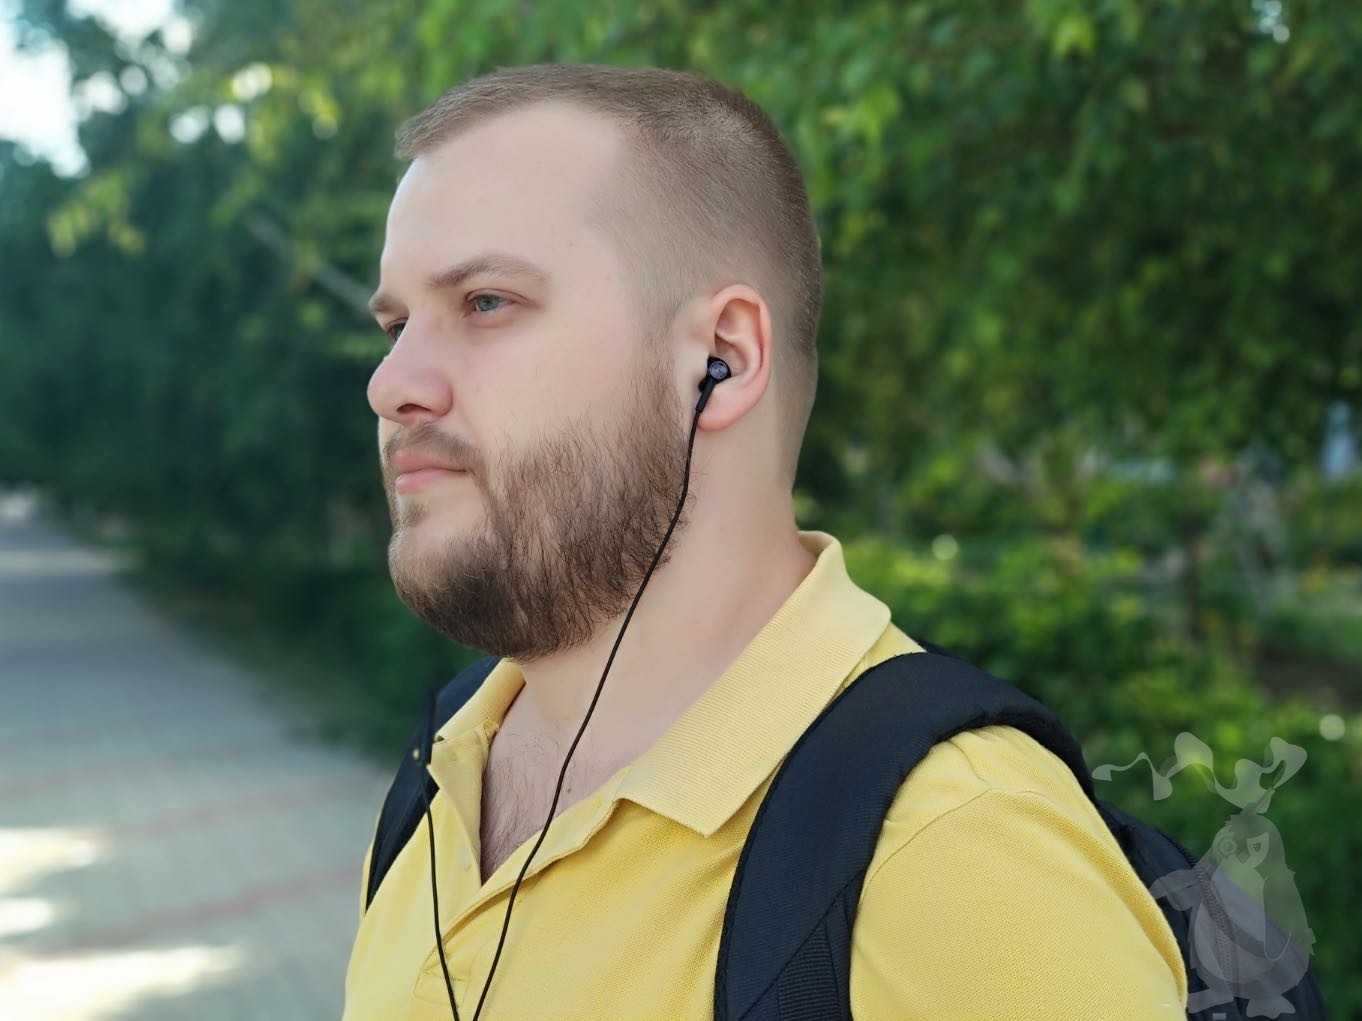 Xiaomi Dual Drivers In-ear Earphones